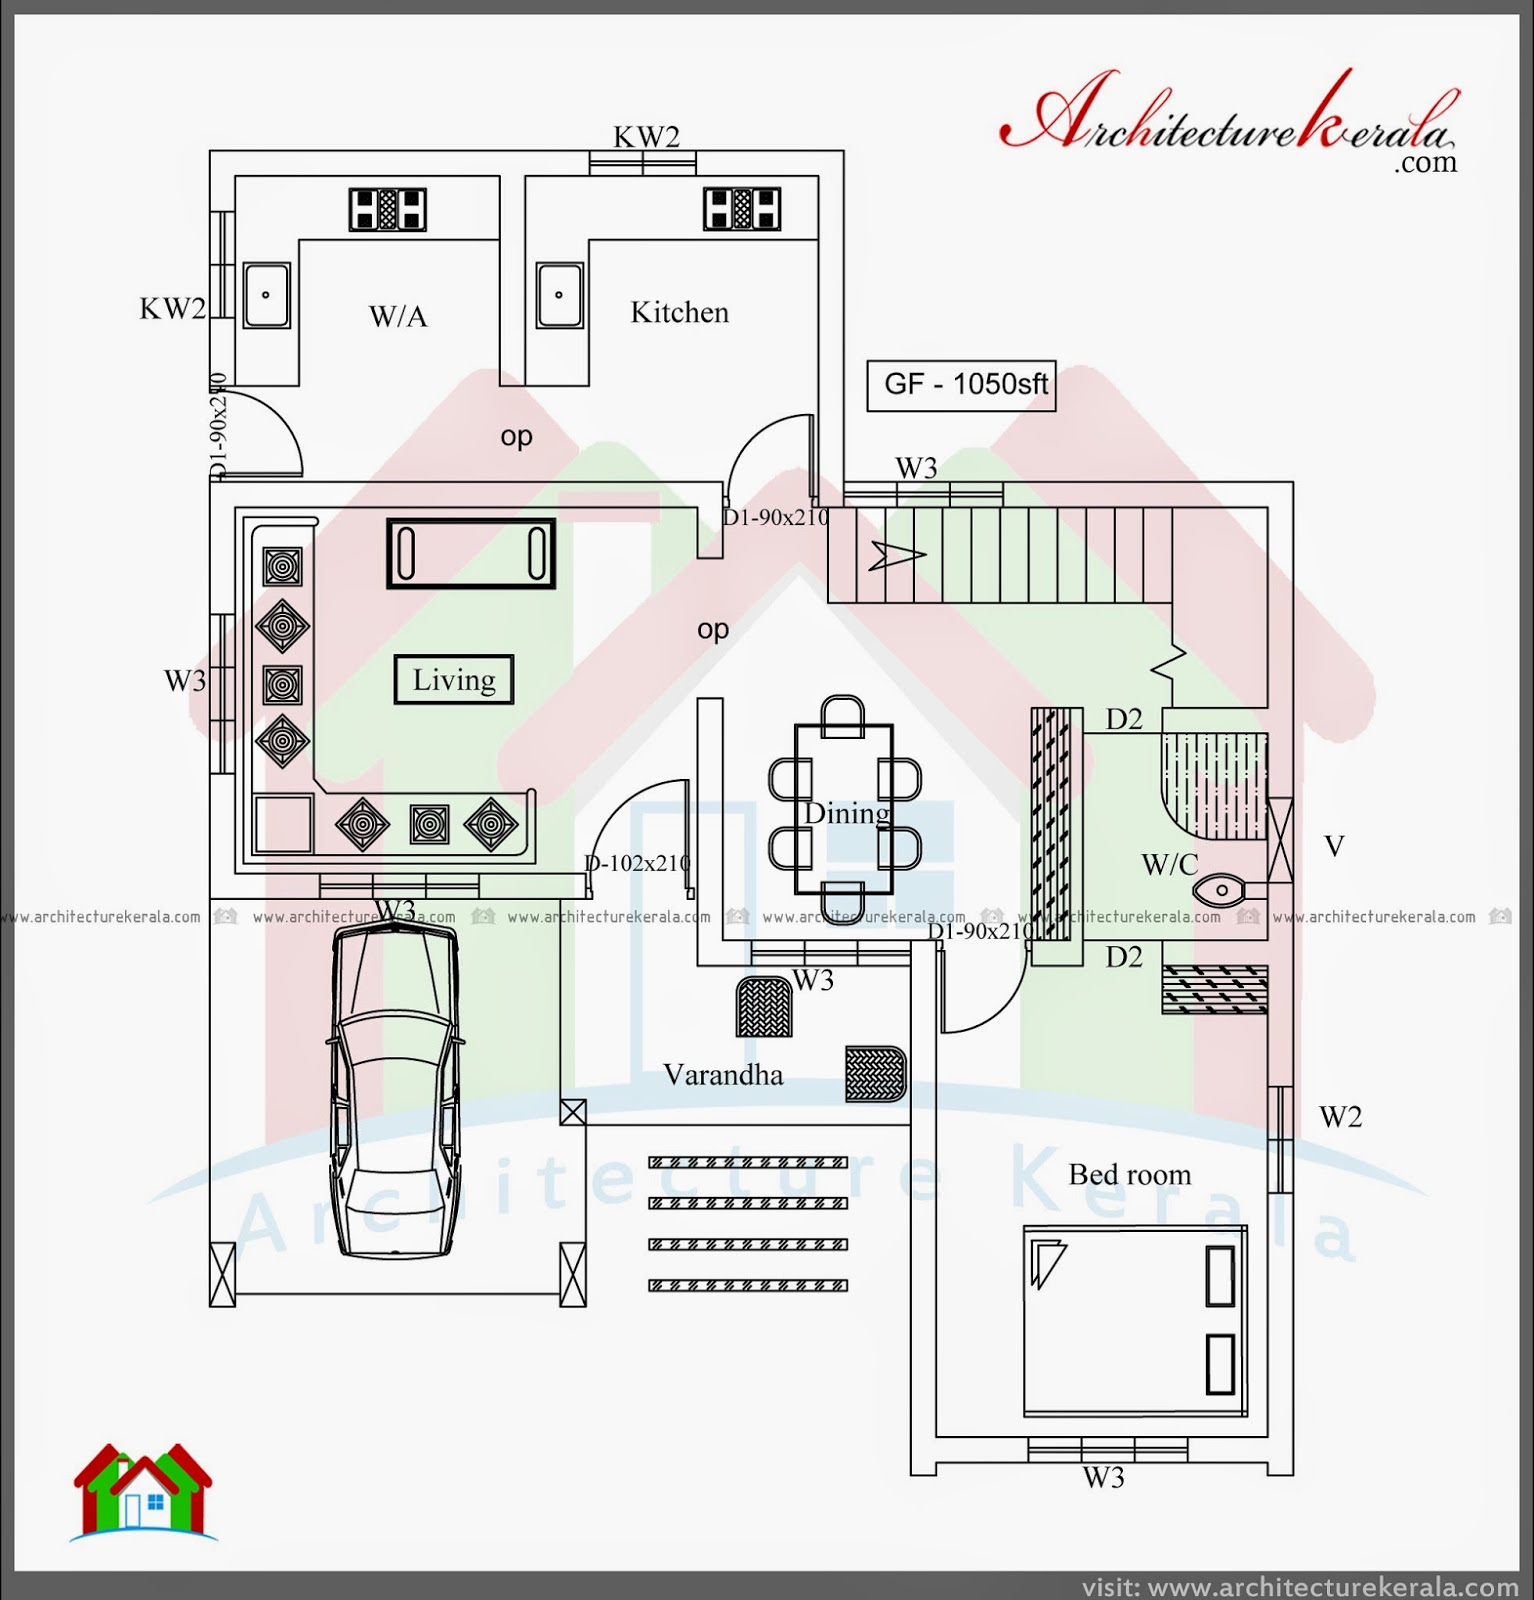 Three bedroom two storey house plan architecture kerala Two story house plans